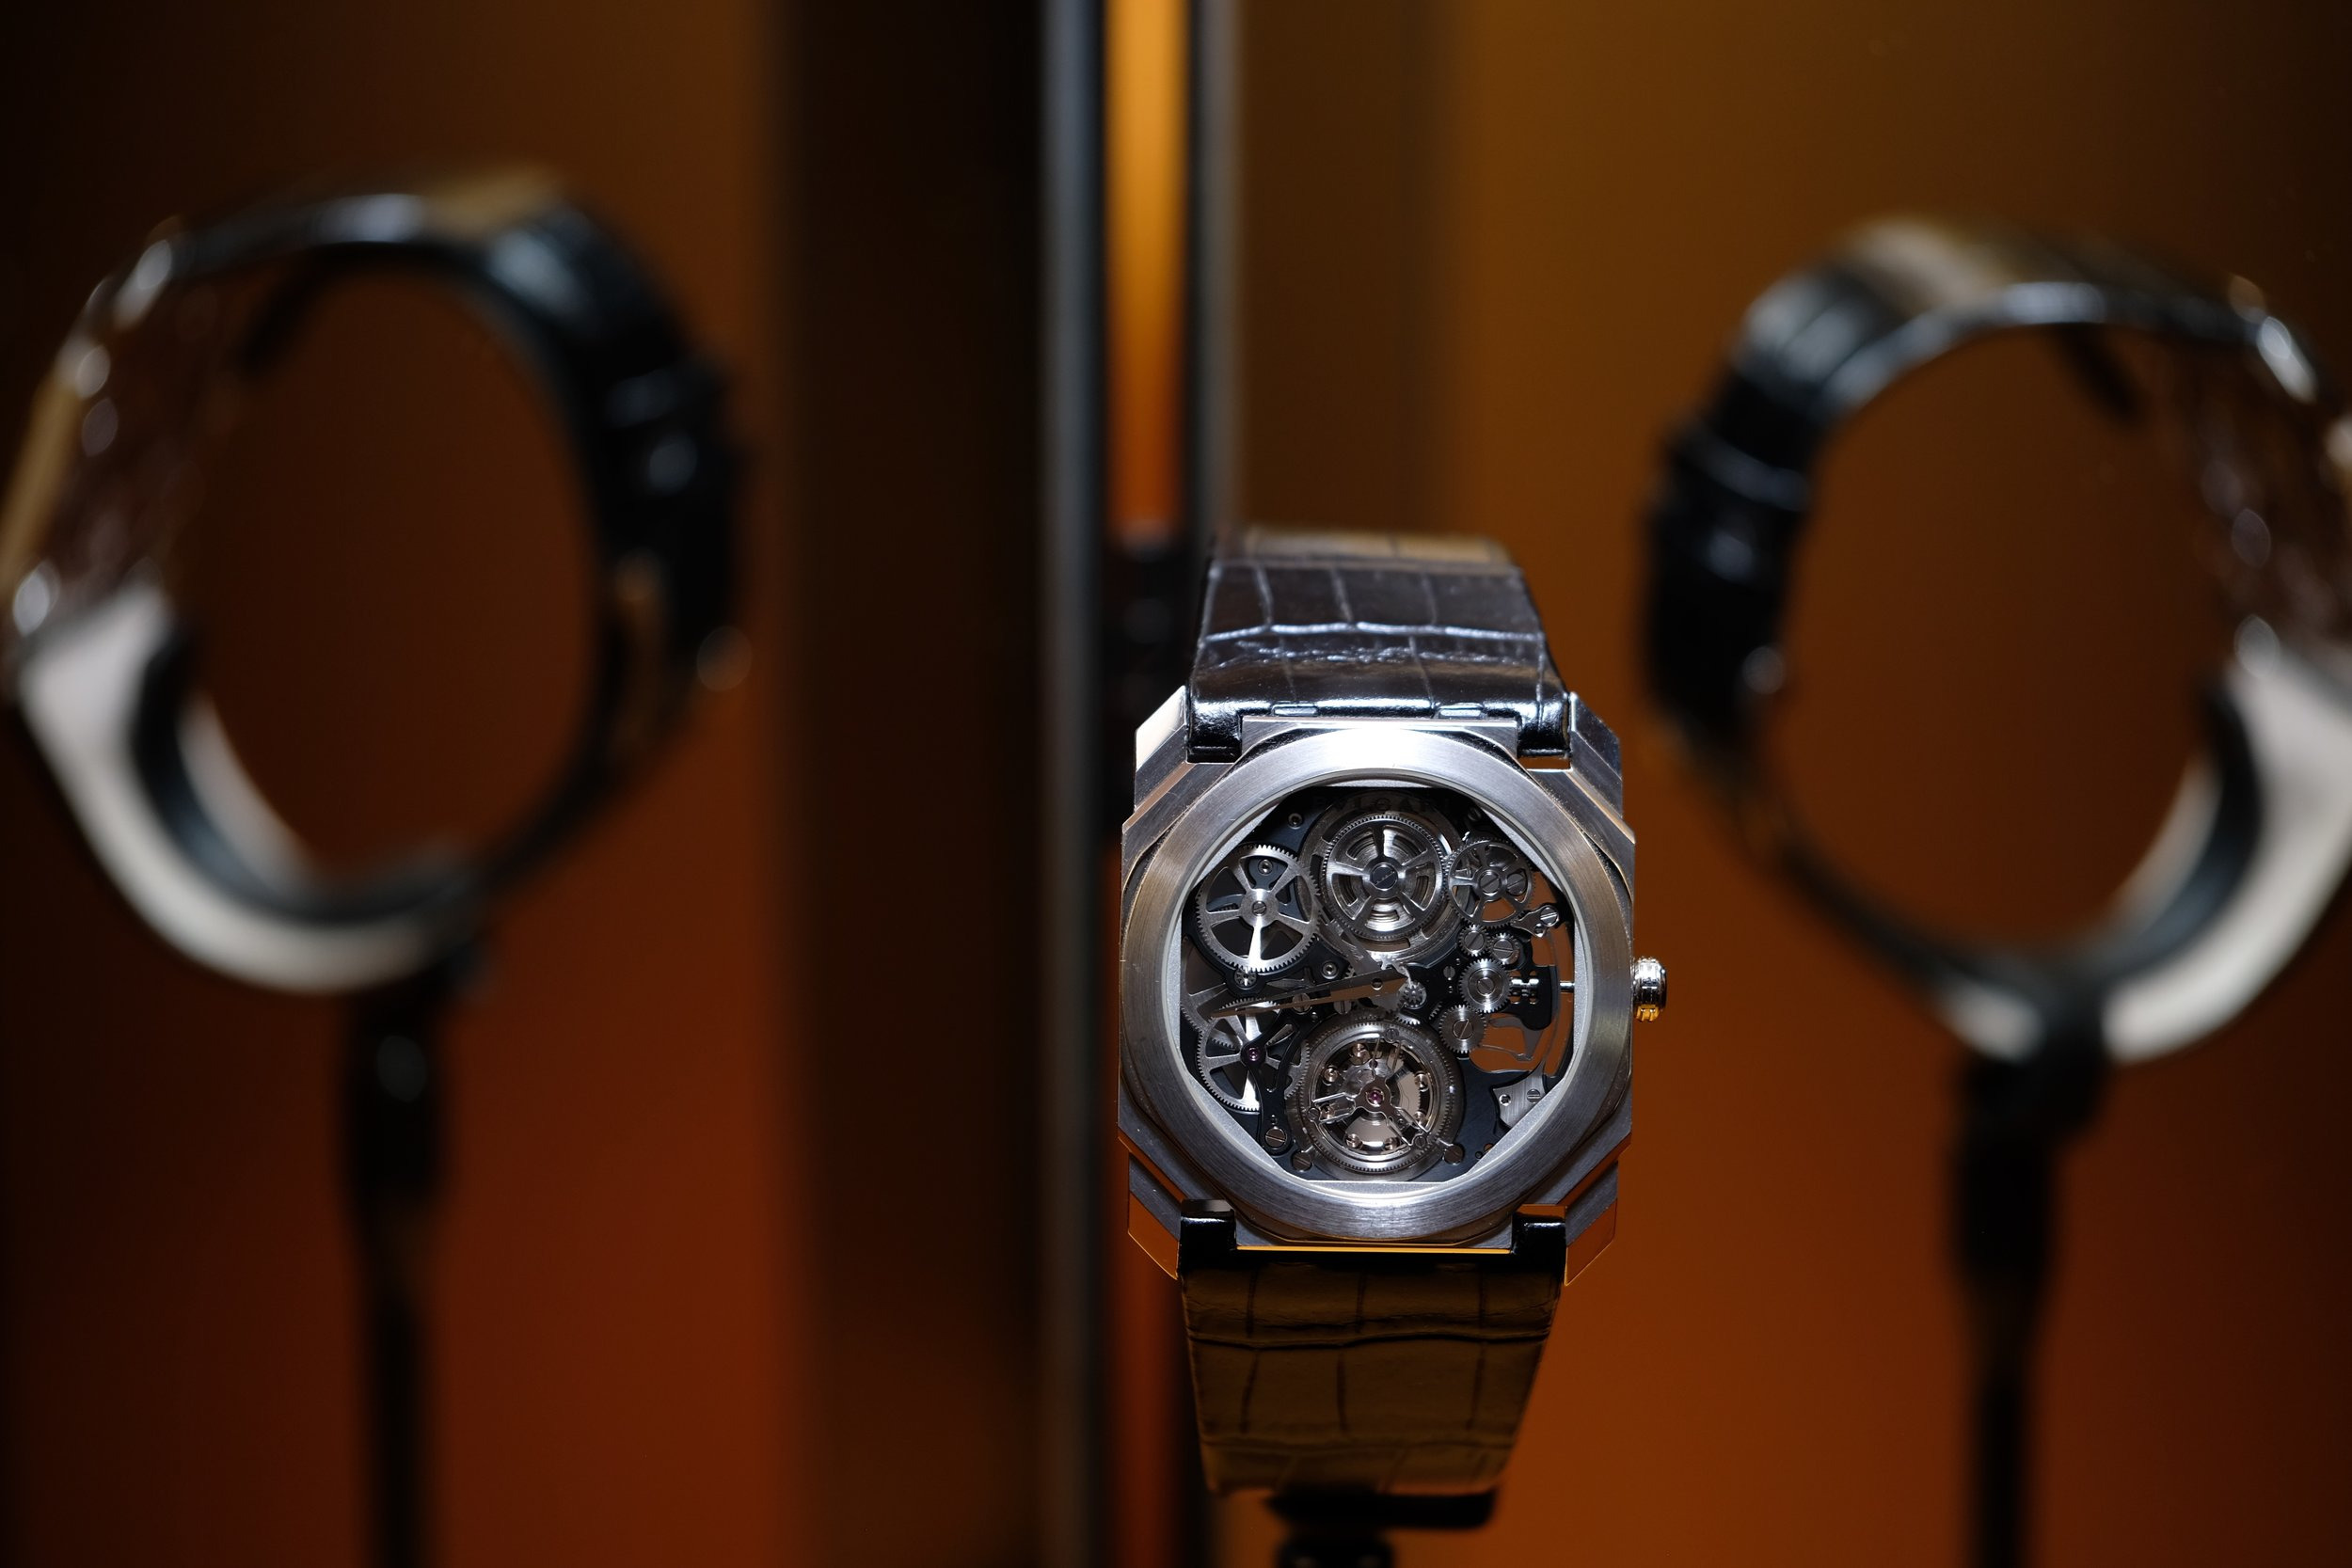 PHOTO COURTESY OF THE RIVERDALE REVIEW   THE NEW  BVLGARI OCTO FINISSIMO TOURBILLON AUTOMATIC